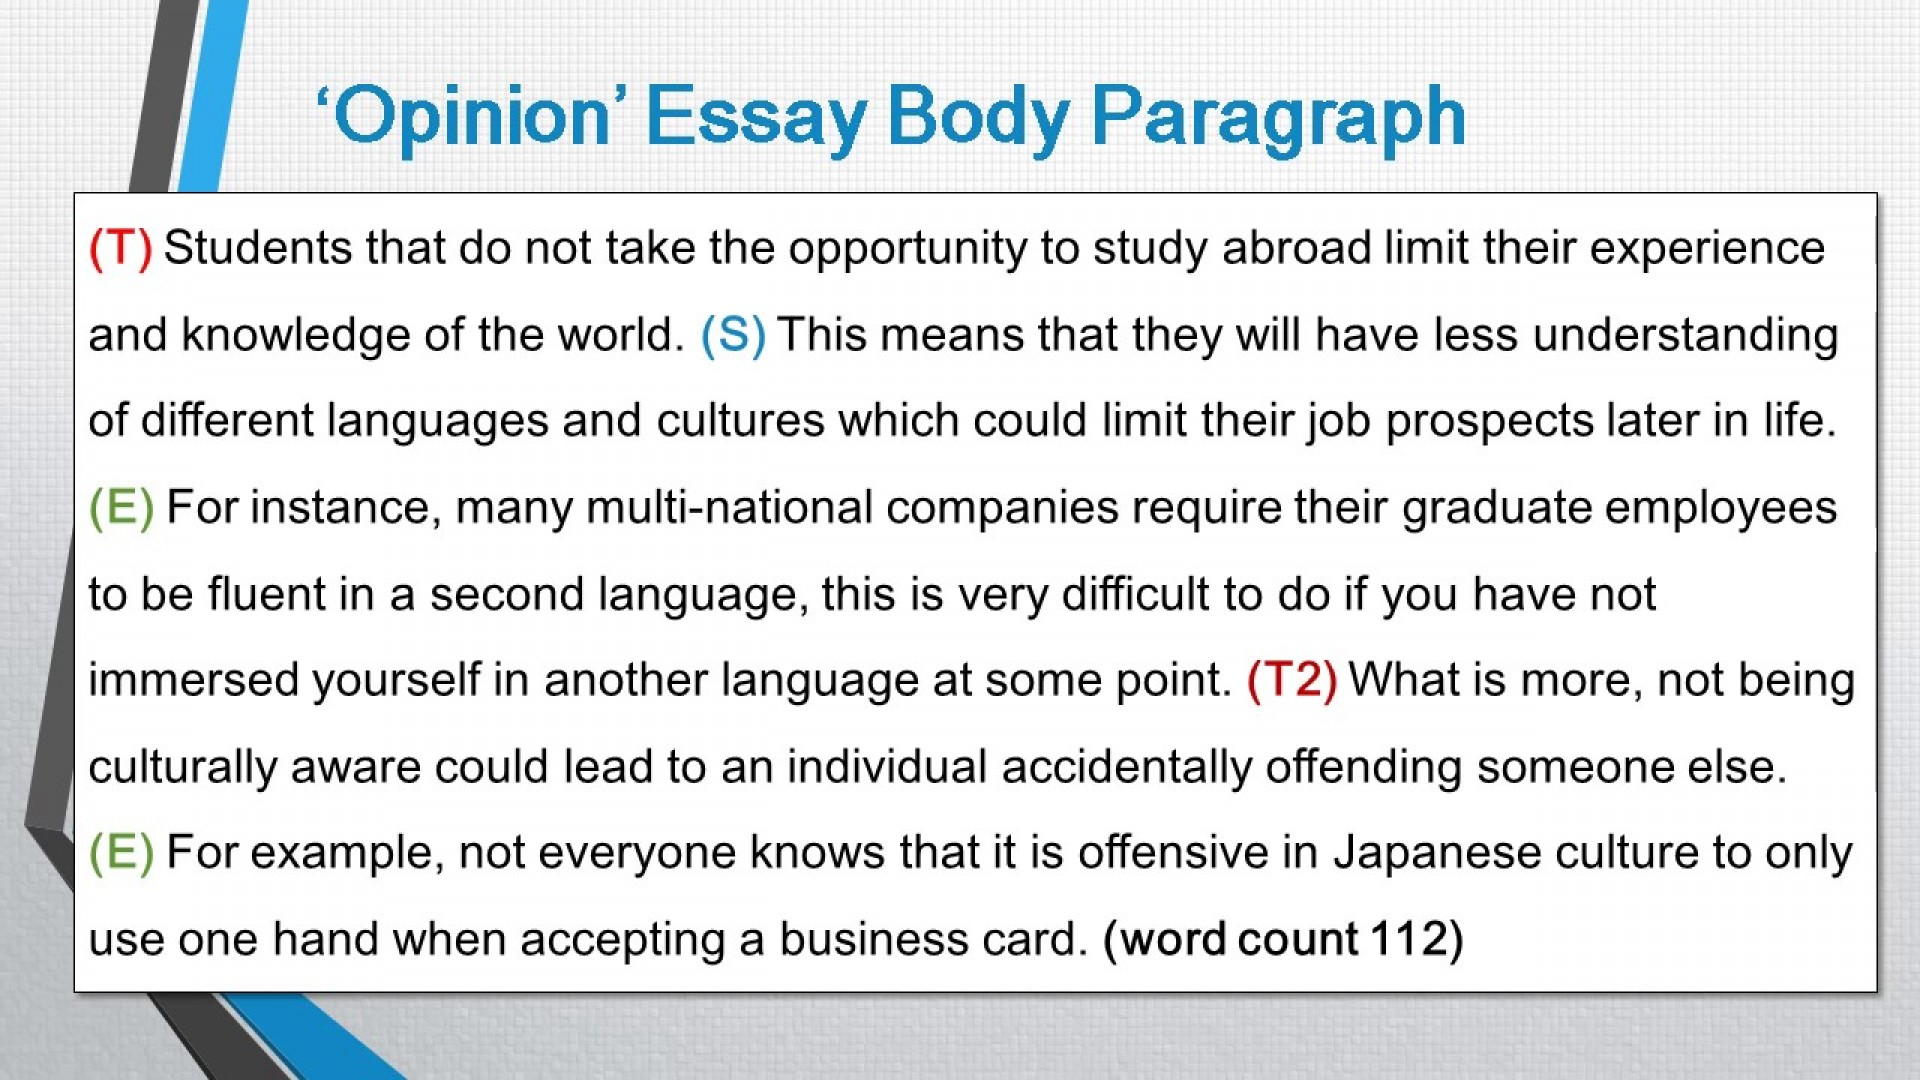 006 How To Start Paragraph In An Essay Maxresdefault Fascinating A Rebuttal Off Research Paper 1920